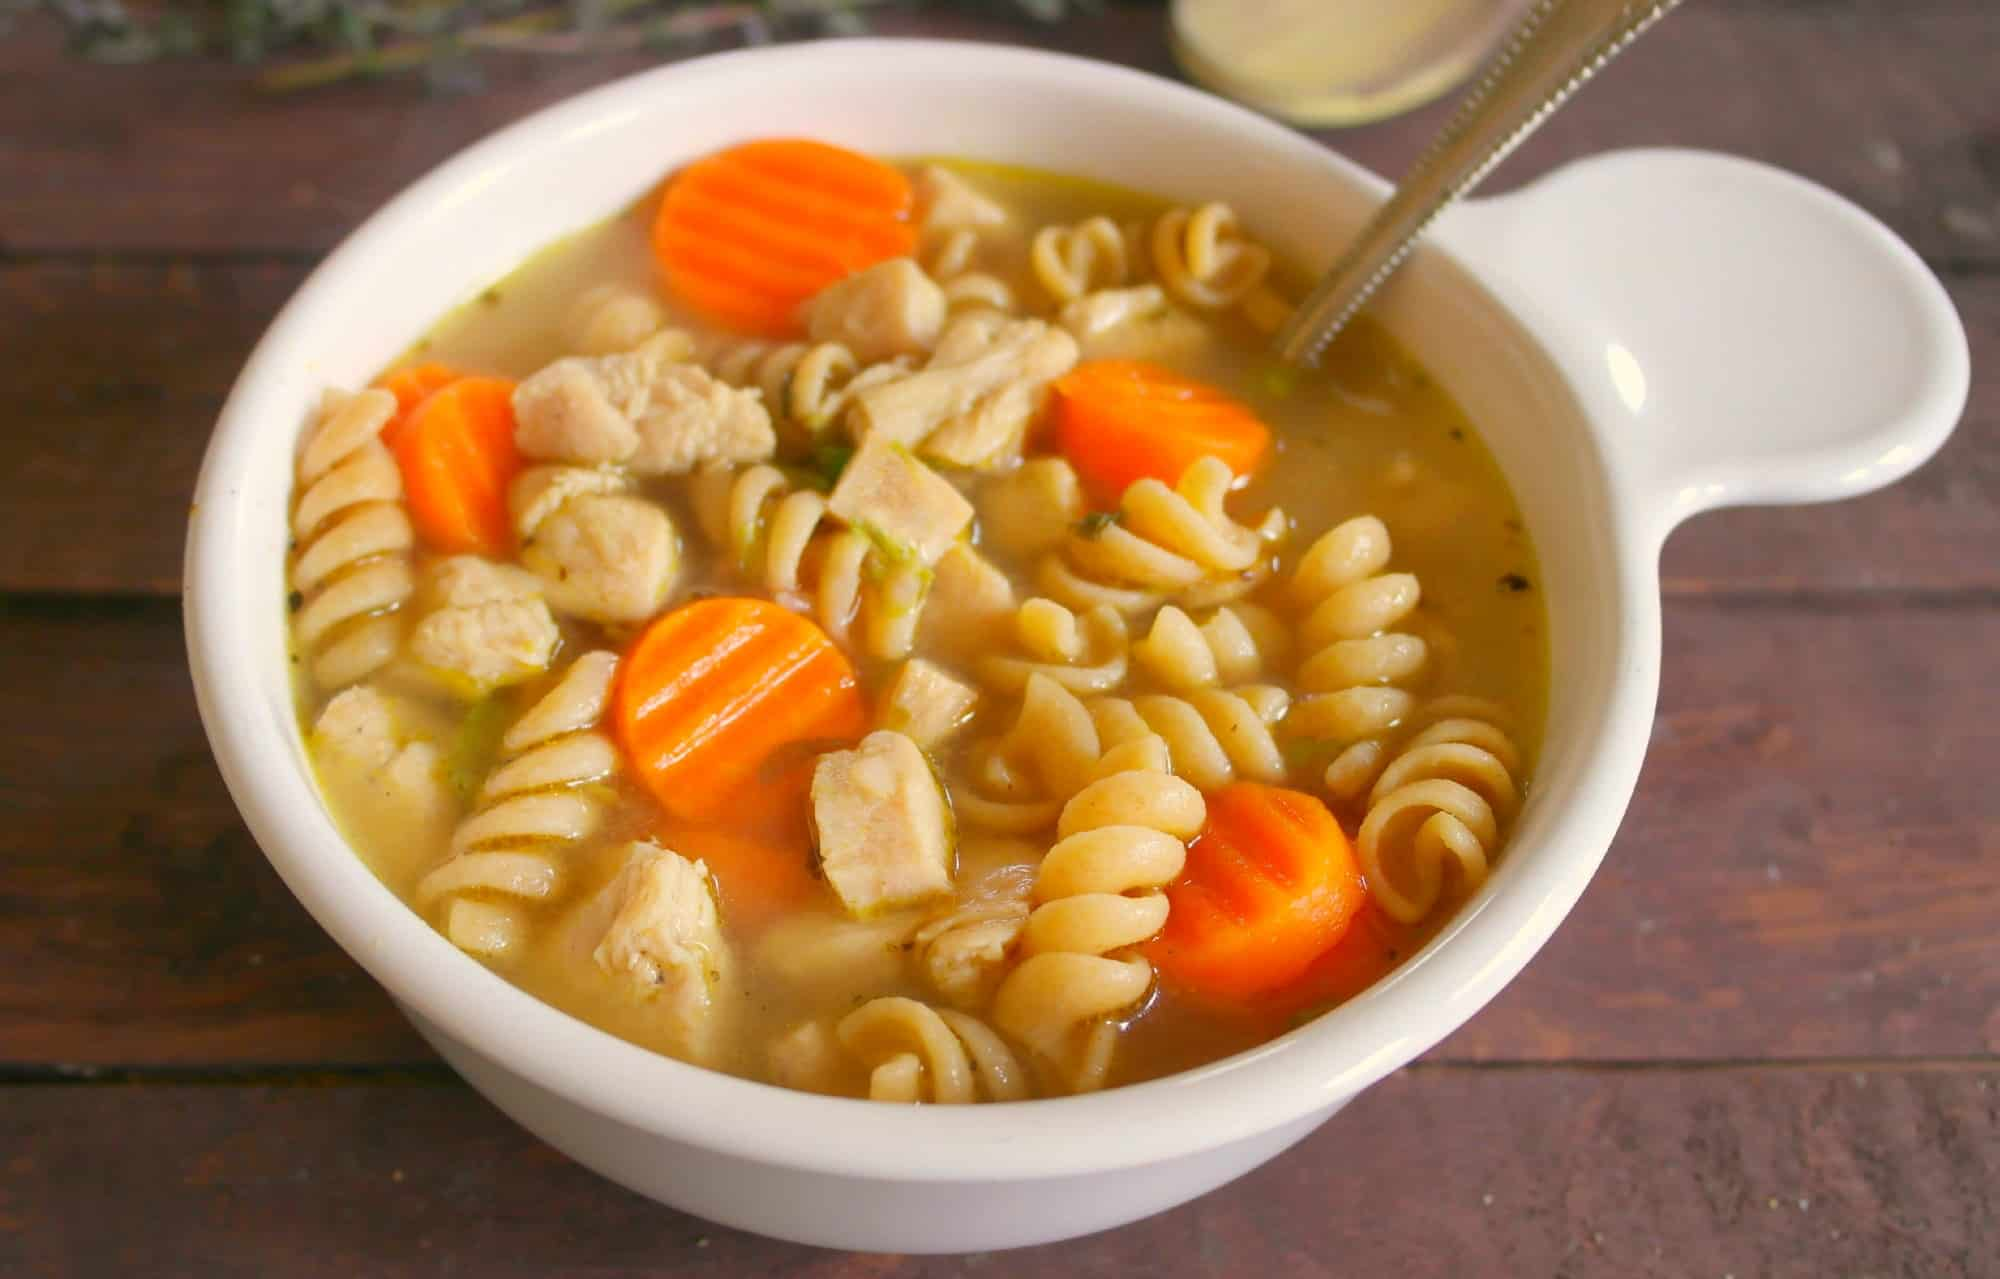 Home Cooked Comfort Taste In This 15 Minute Chicken Noodle